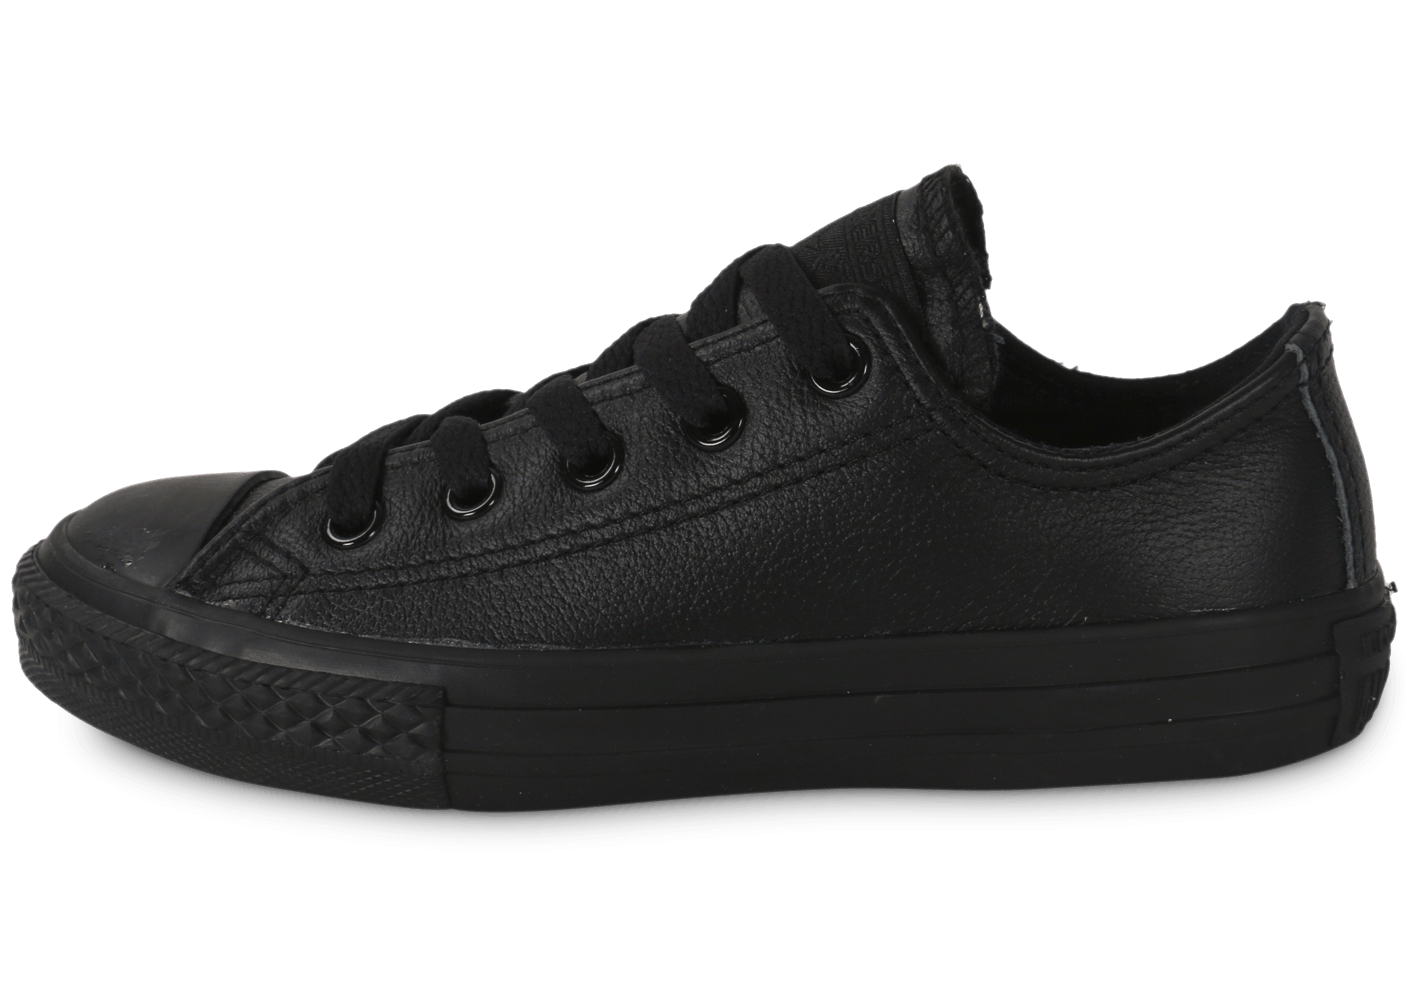 converse chuck taylor all star low enfant cuir noir chaussures chaussures chausport. Black Bedroom Furniture Sets. Home Design Ideas